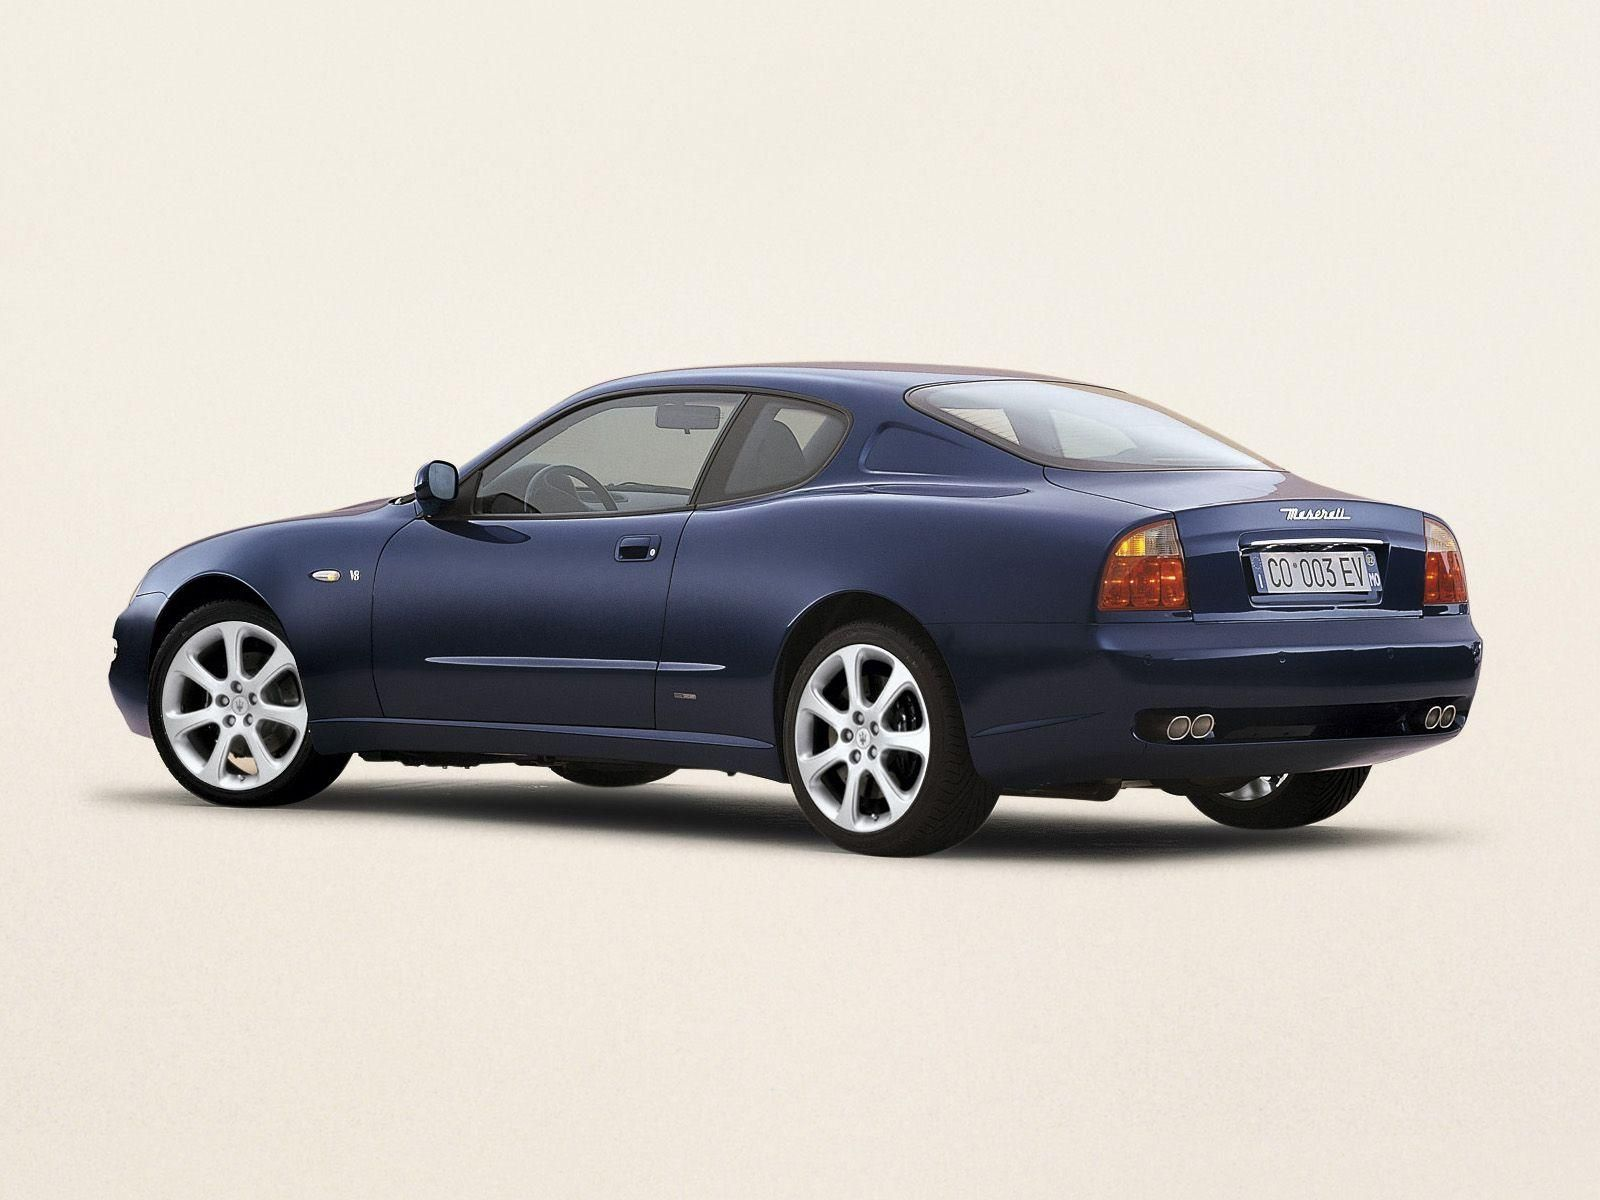 2002 Maserati Coupe | Maserati, Maserati price, Maserati coupe